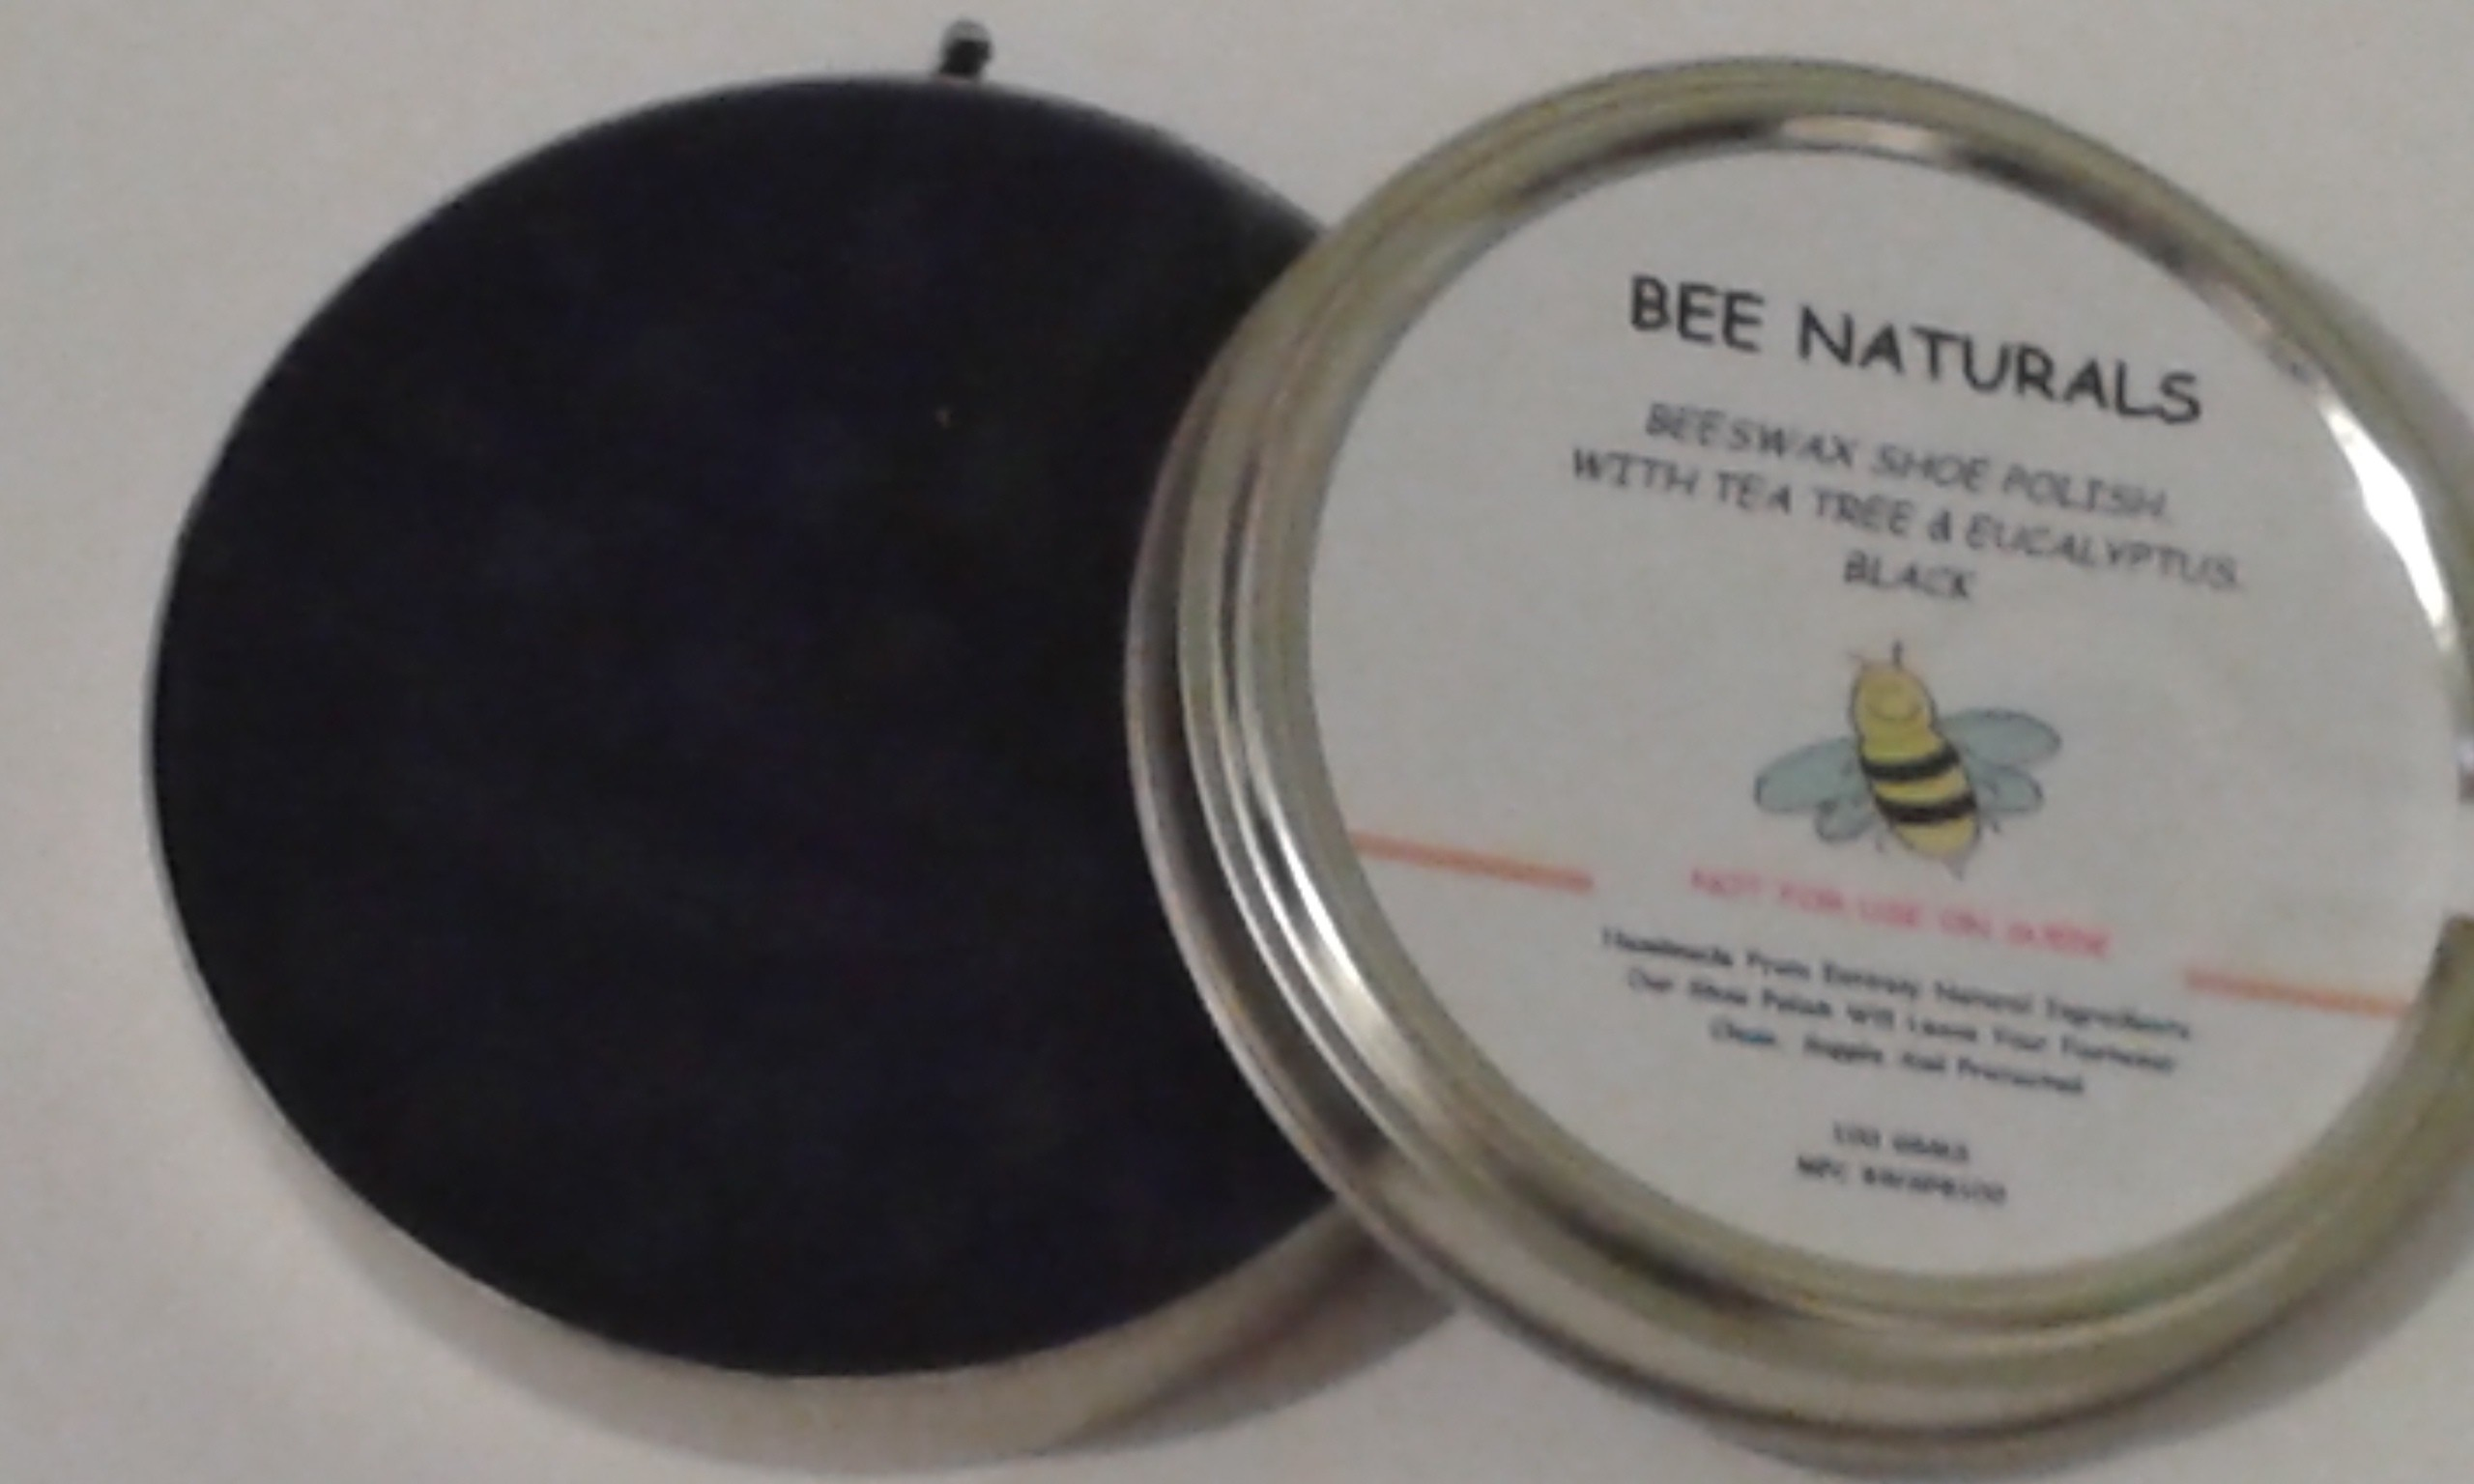 purchase cheap 50% price where can i buy Handmade Beeswax And Carnauba Wax Black Shoe Polish | BEE NATURALS ...